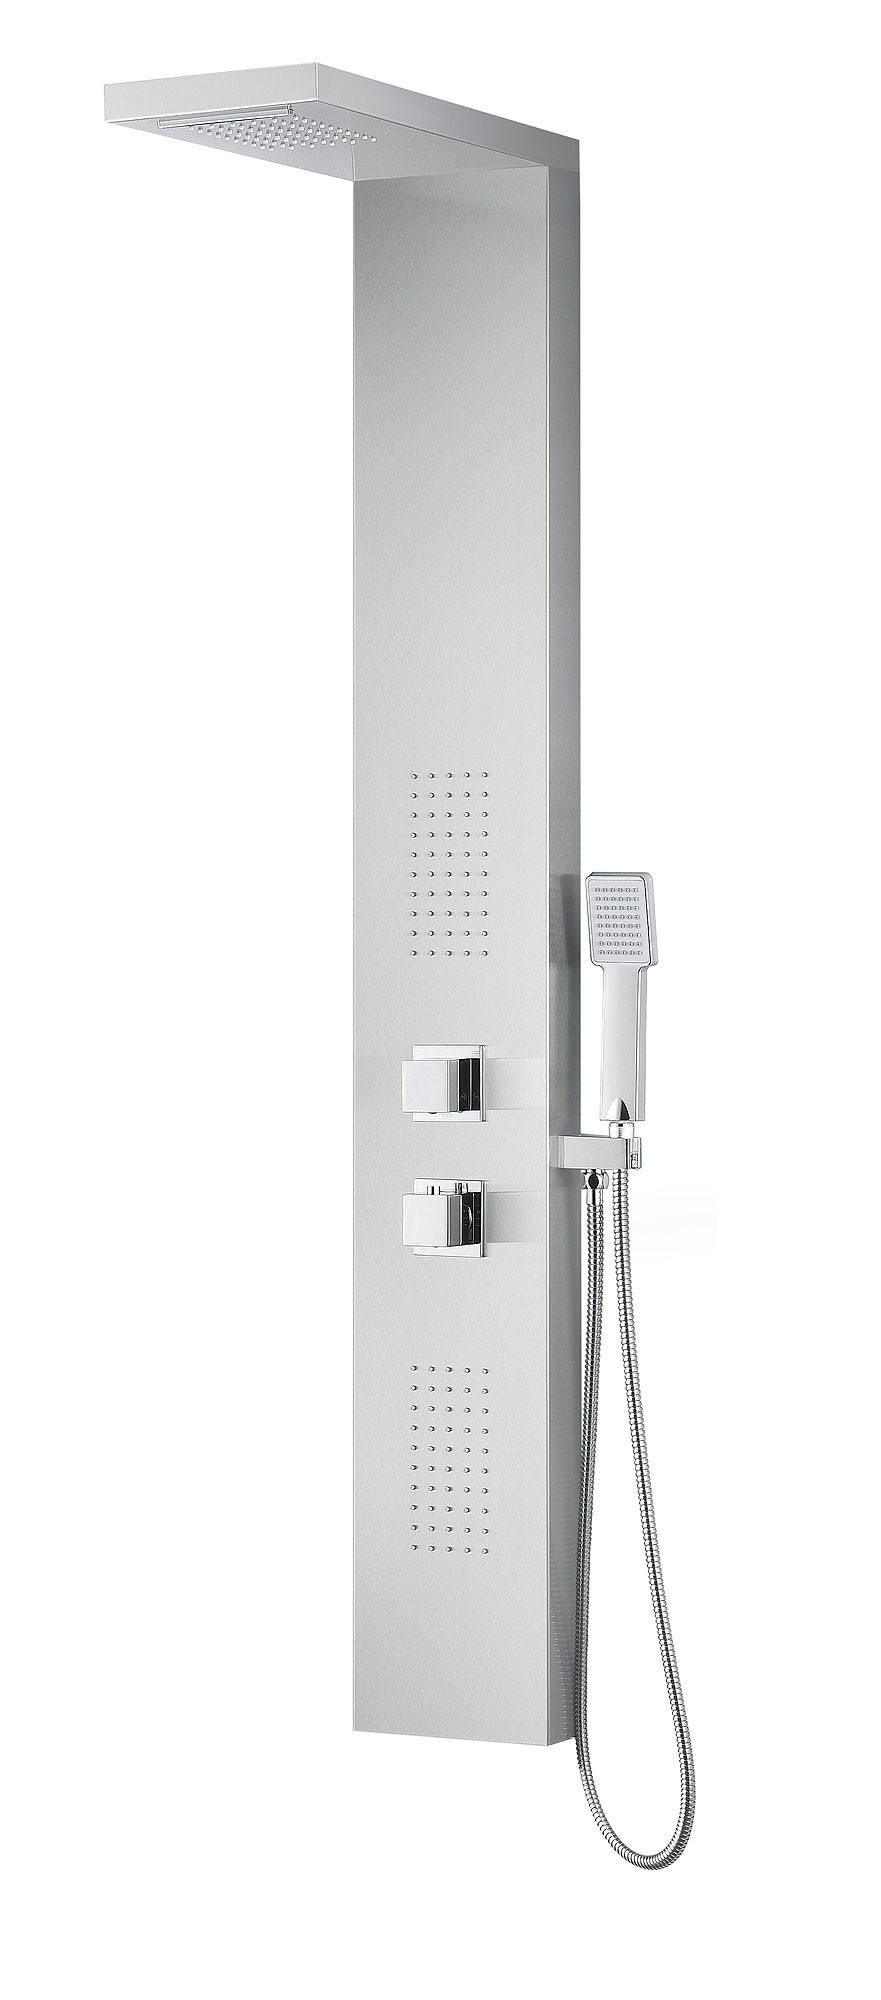 ANZZI SP-AZ041 Expanse Shower Panel System In Brushed Stainless Steel